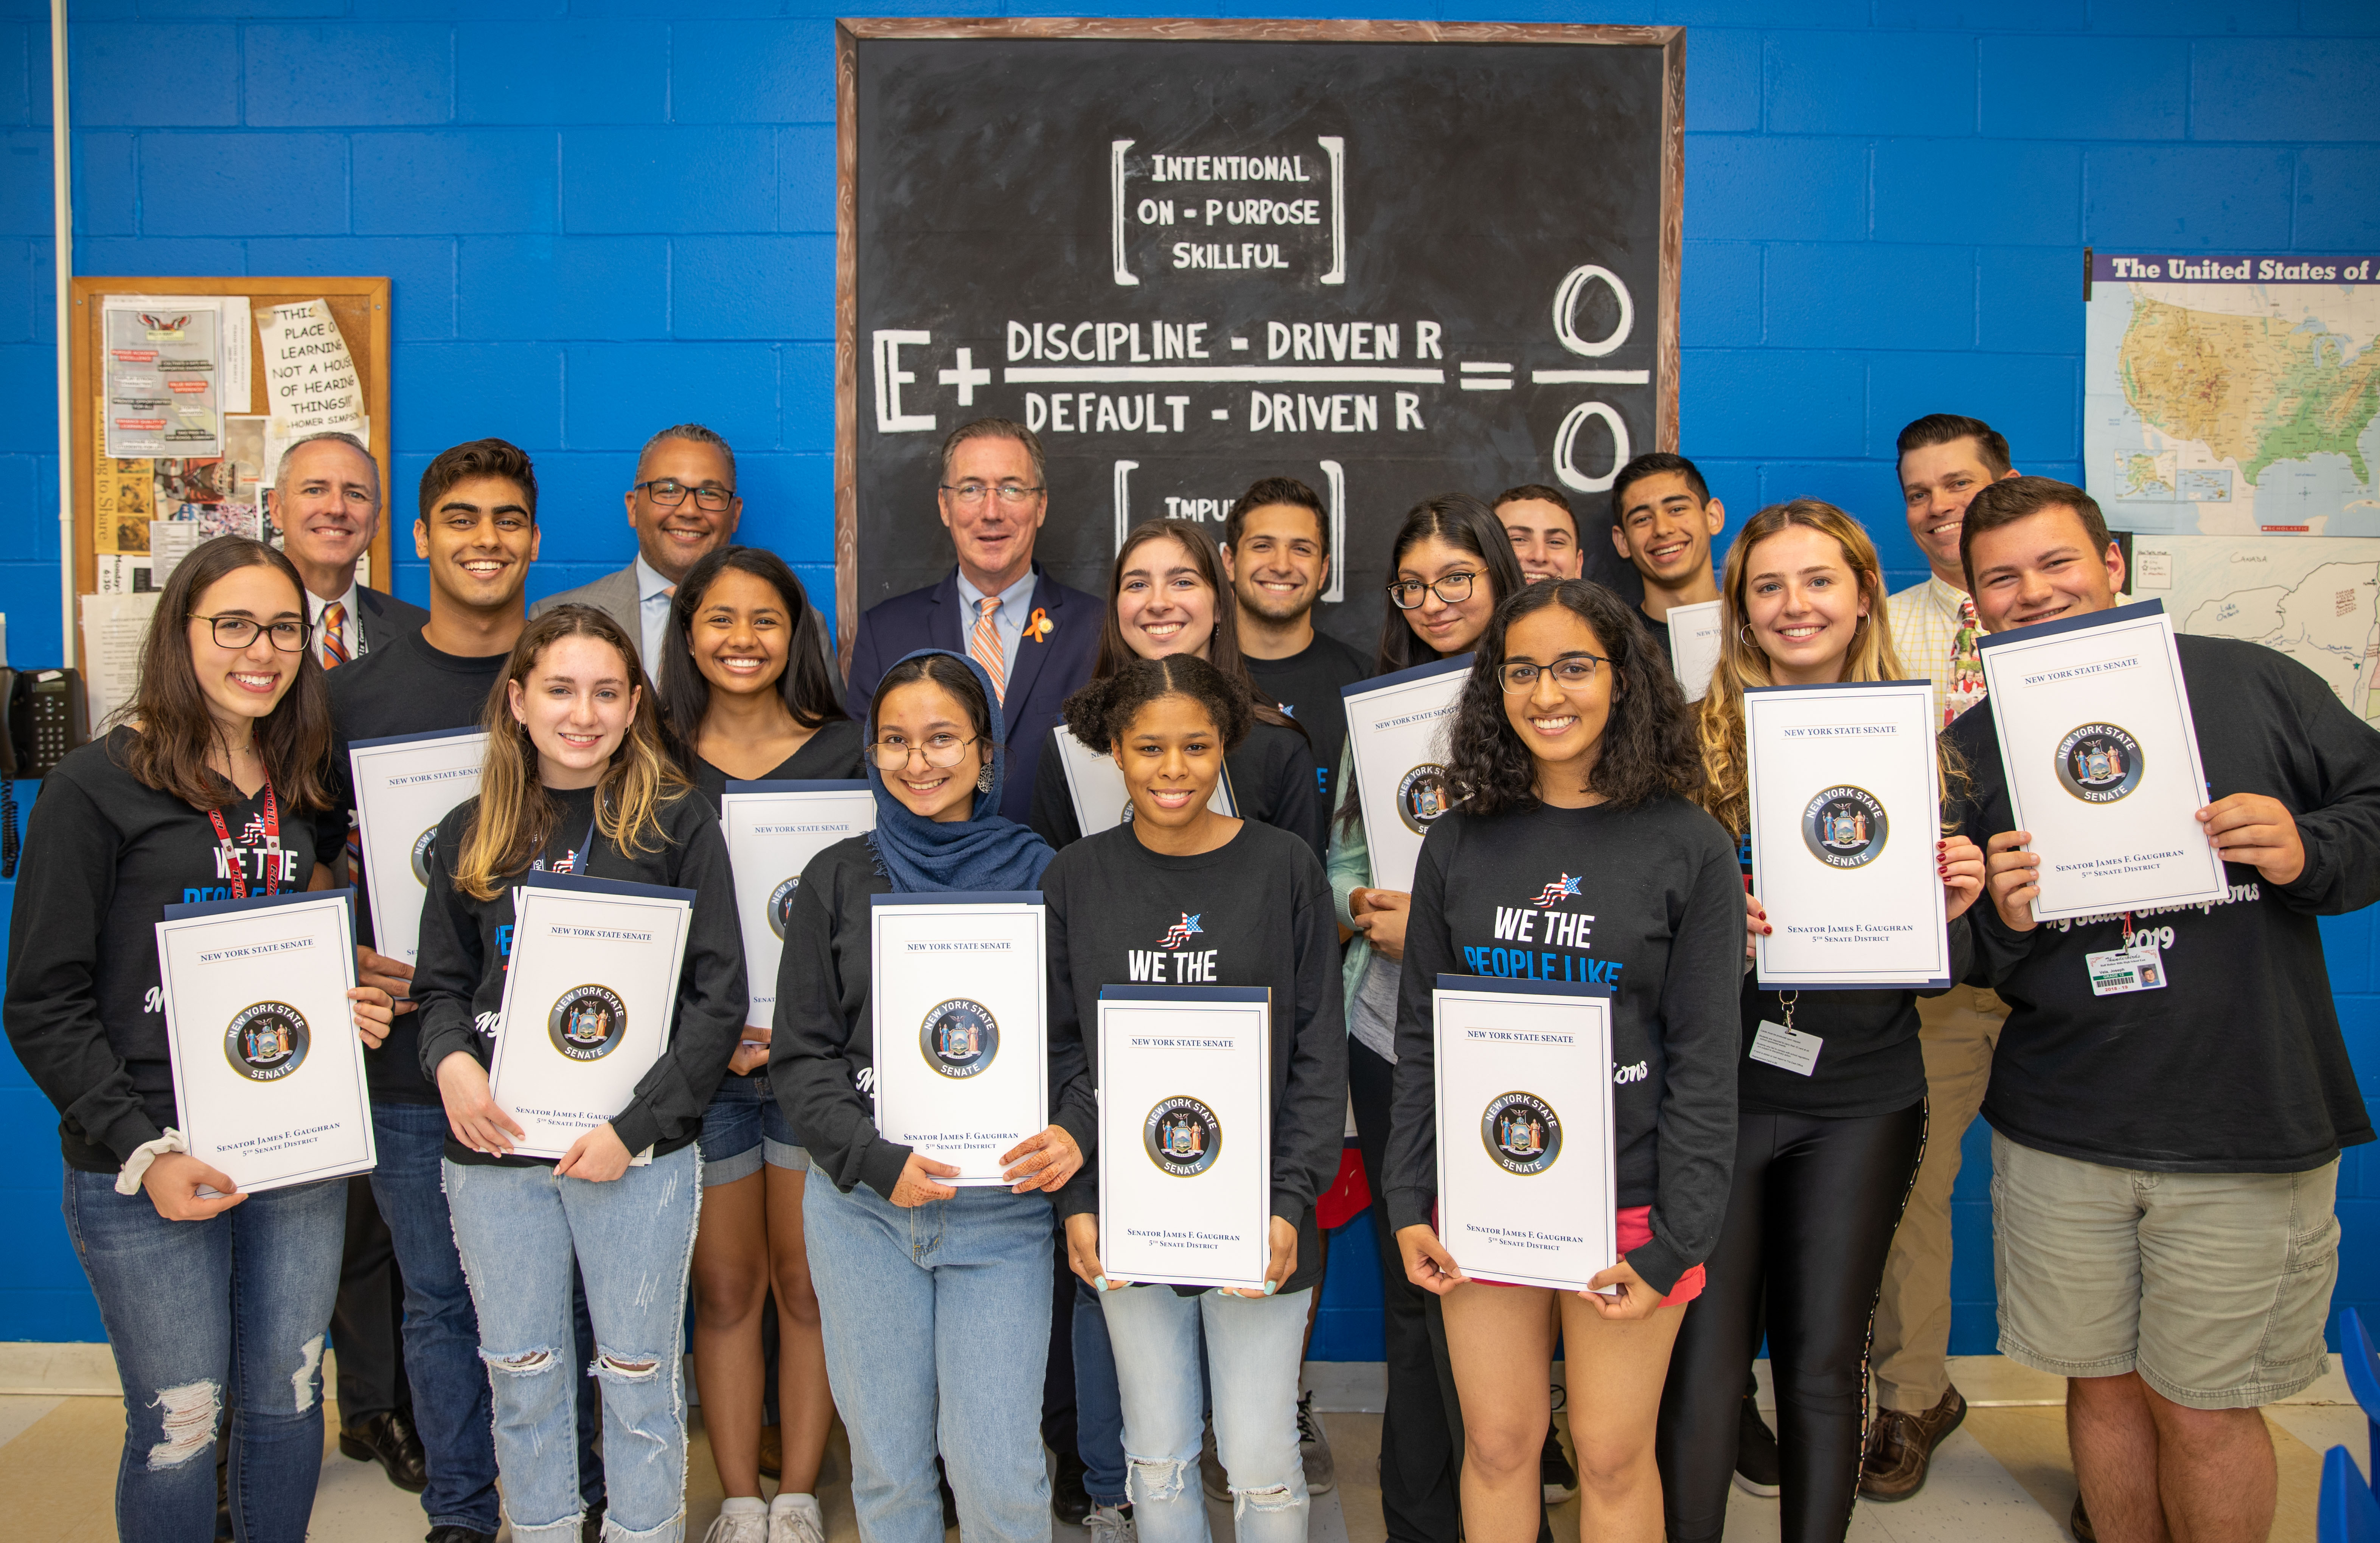 State Senator Gaughran Visits East's State Champion We The People Team